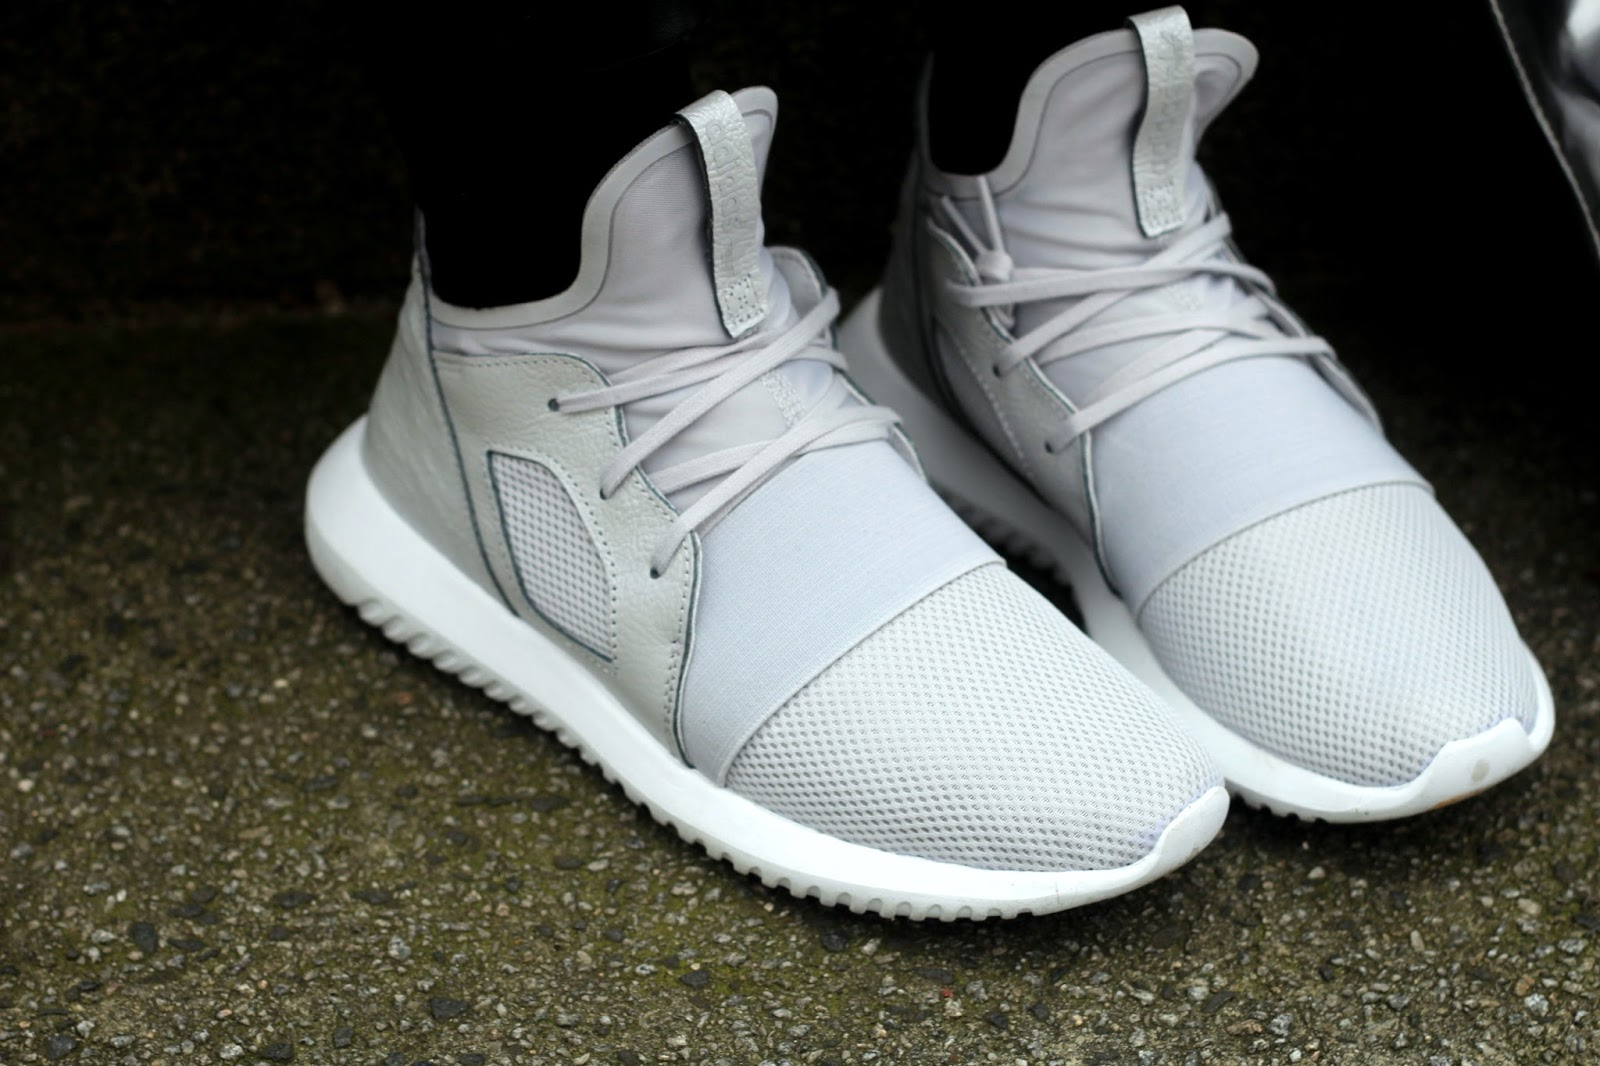 Adidas tubular runner weave review, mens adidas originals zx 500 og